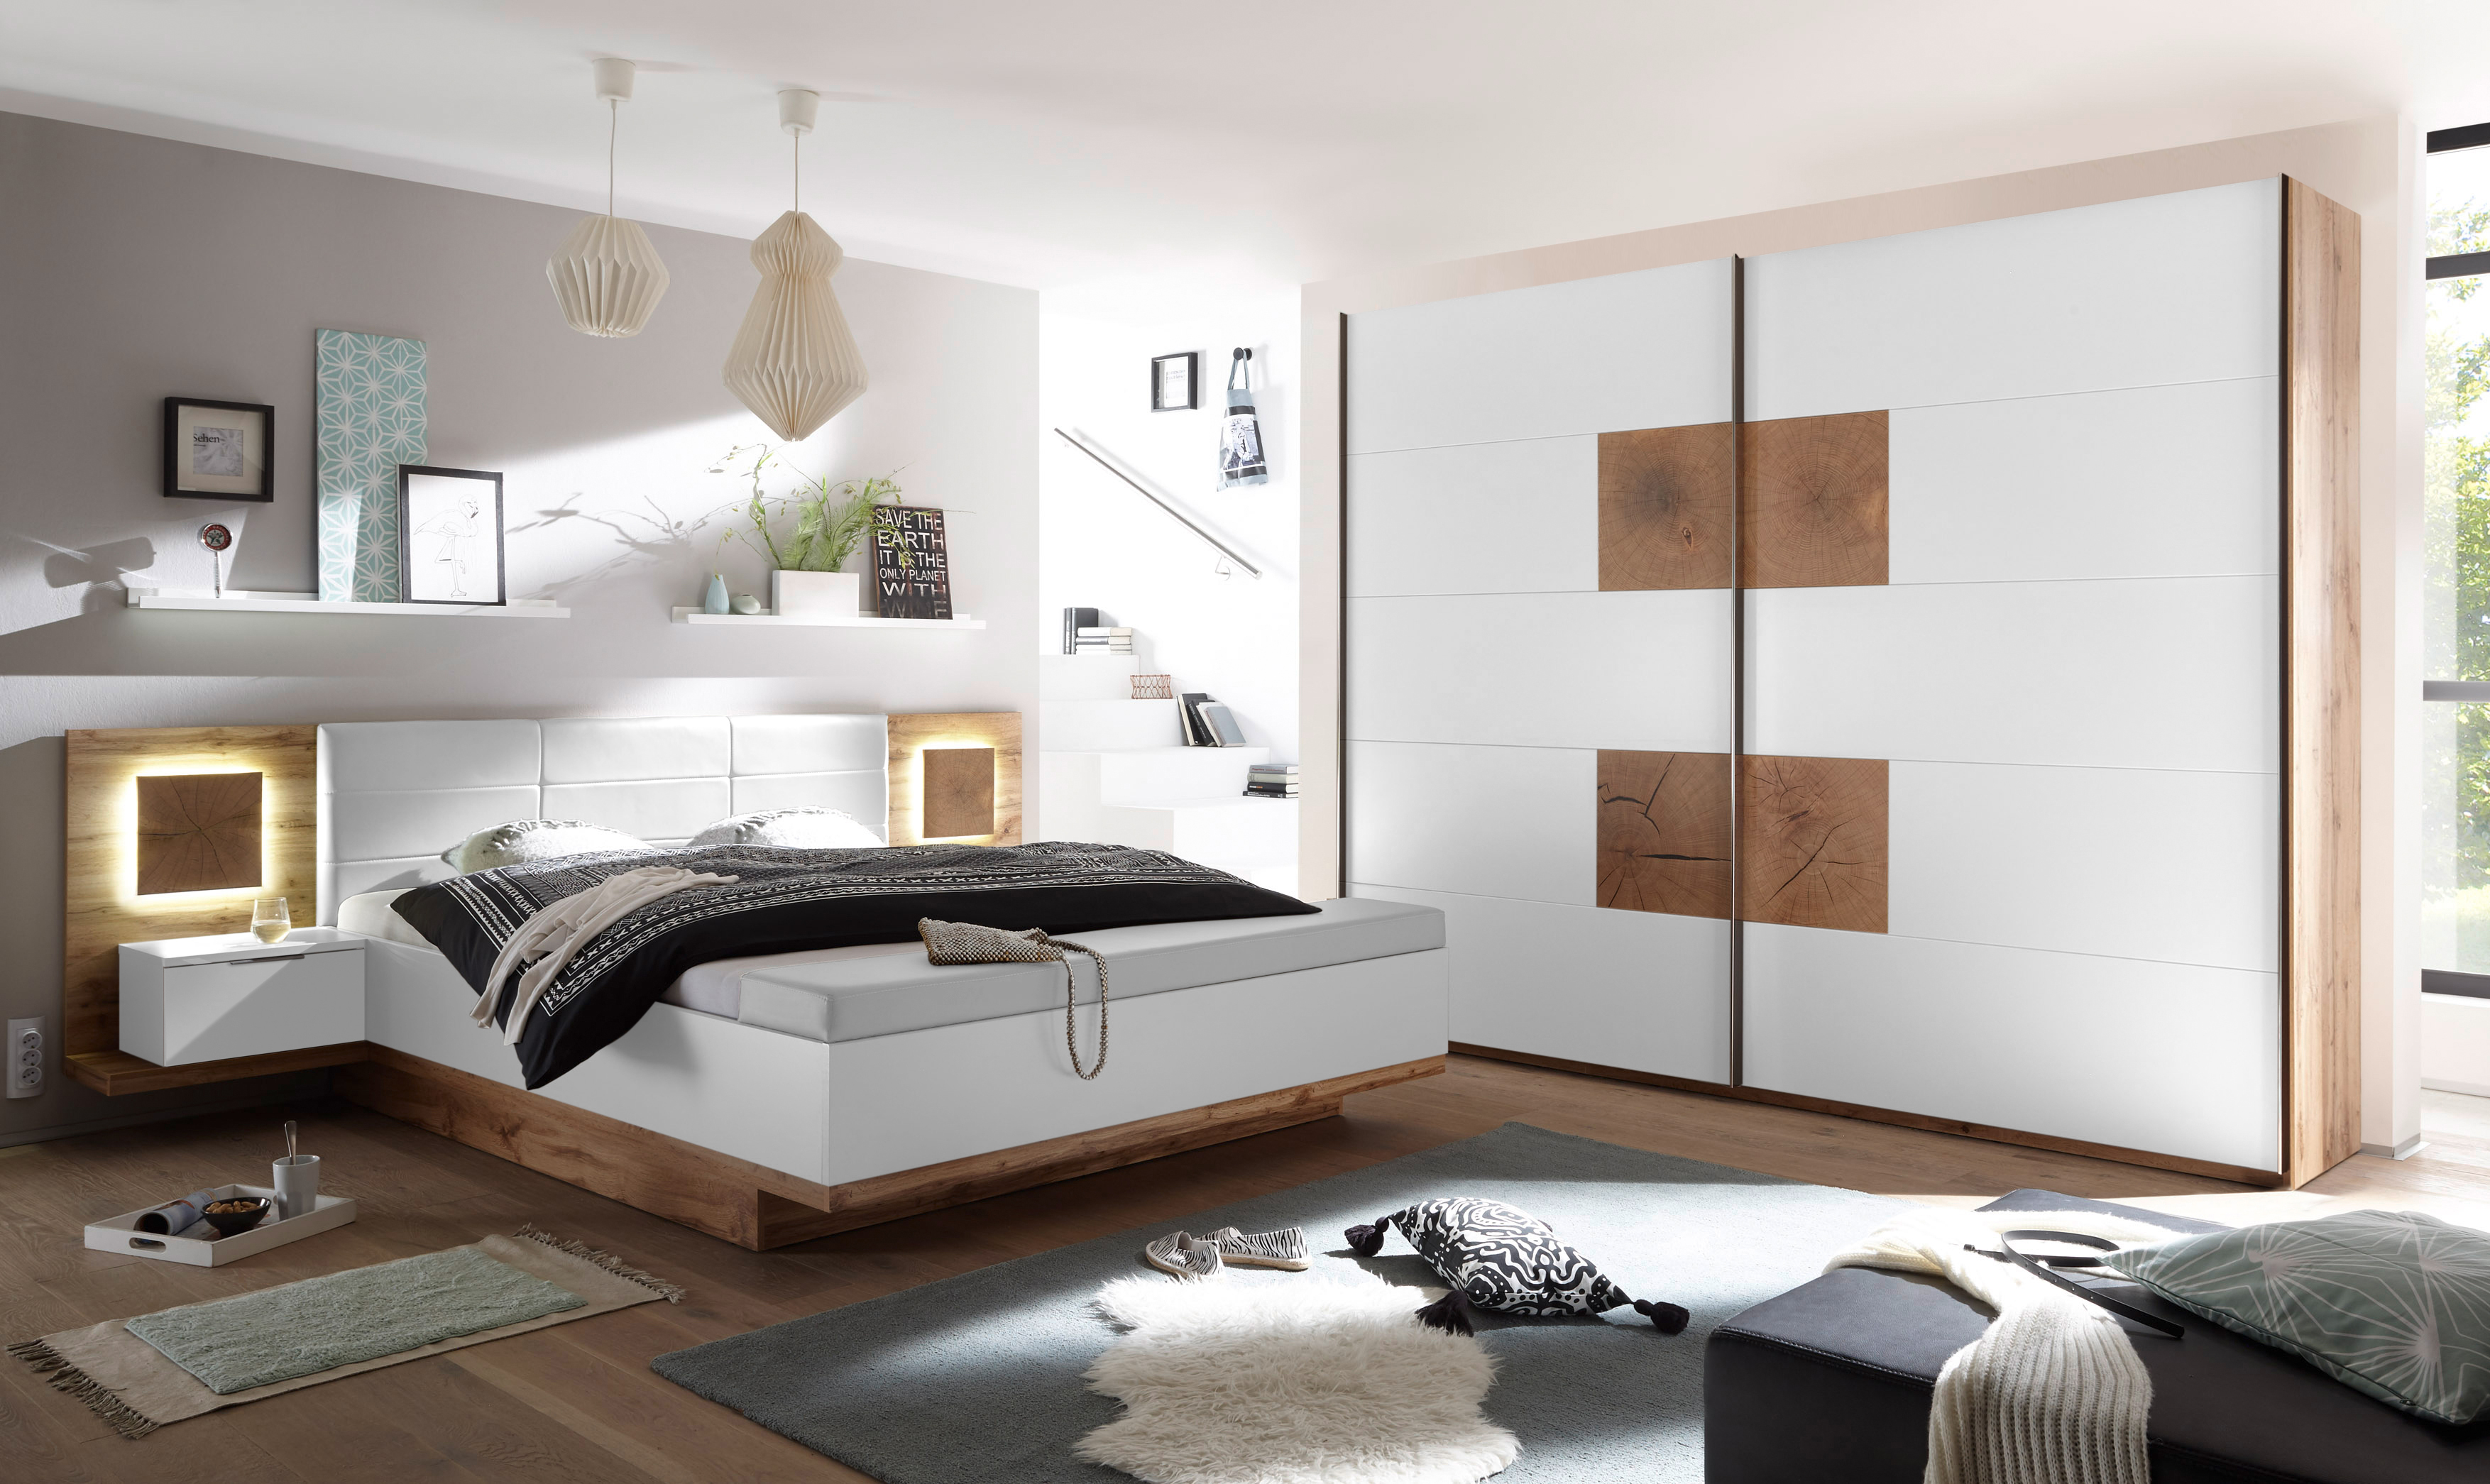 bett wildeiche massives mit bettende bett massivholz wildeiche in wei wirkt das futonbett. Black Bedroom Furniture Sets. Home Design Ideas